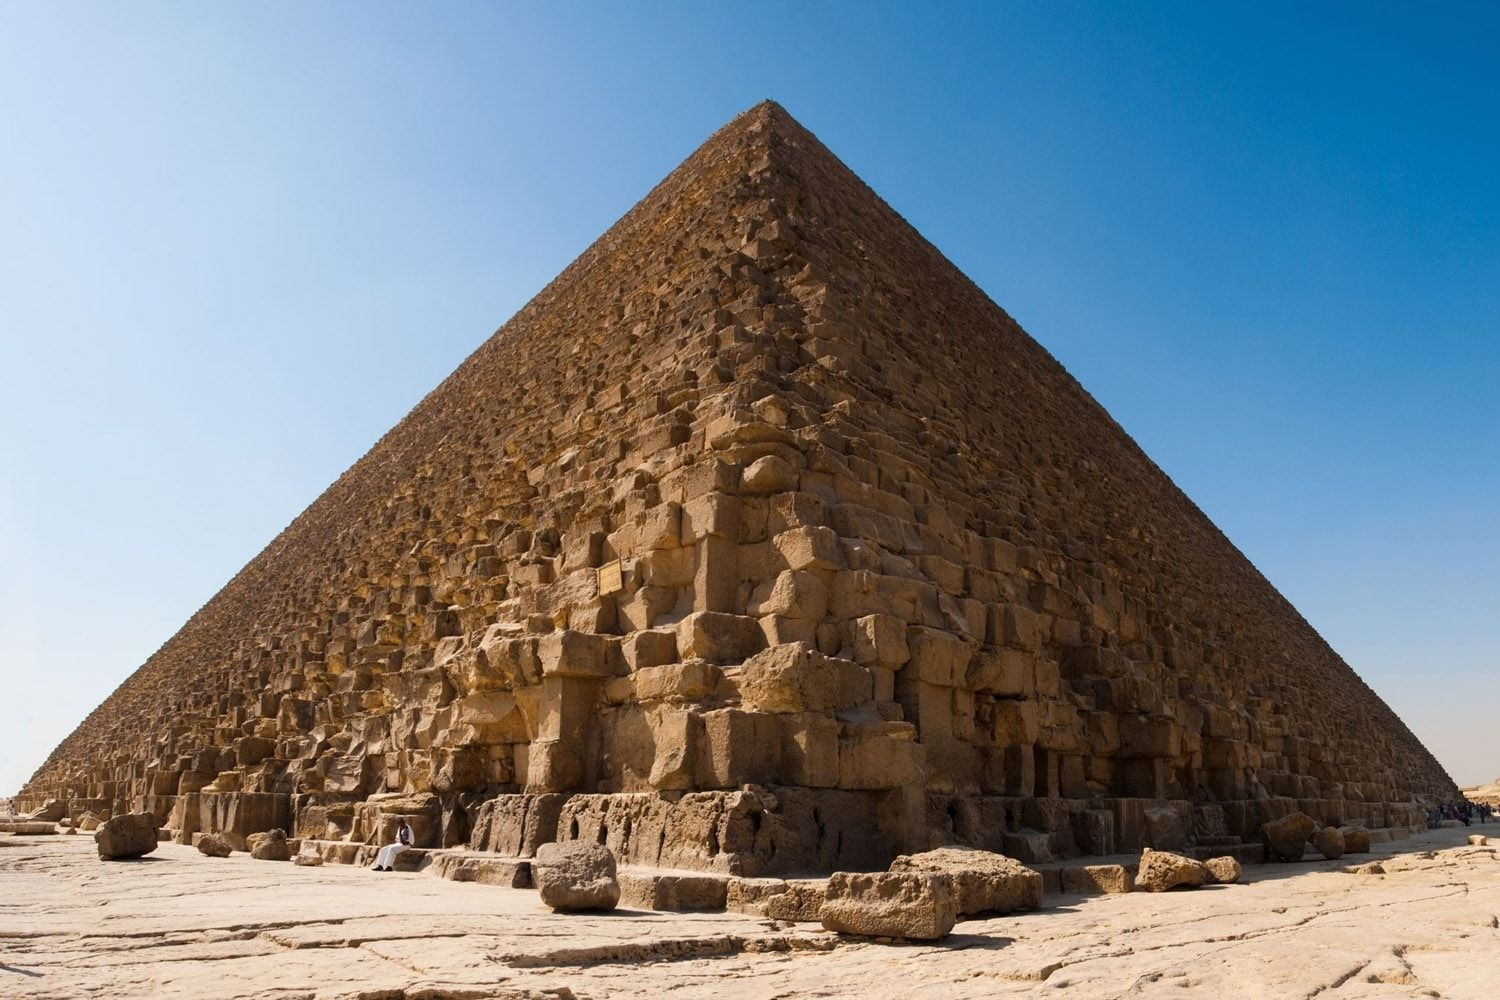 Since October 2015 The Mission Scanpyramids Probe The Walls Of Four Pyramids Including That Of Cheops In This Pictur Pyramide Pyramide De Kheops Toutankhamon